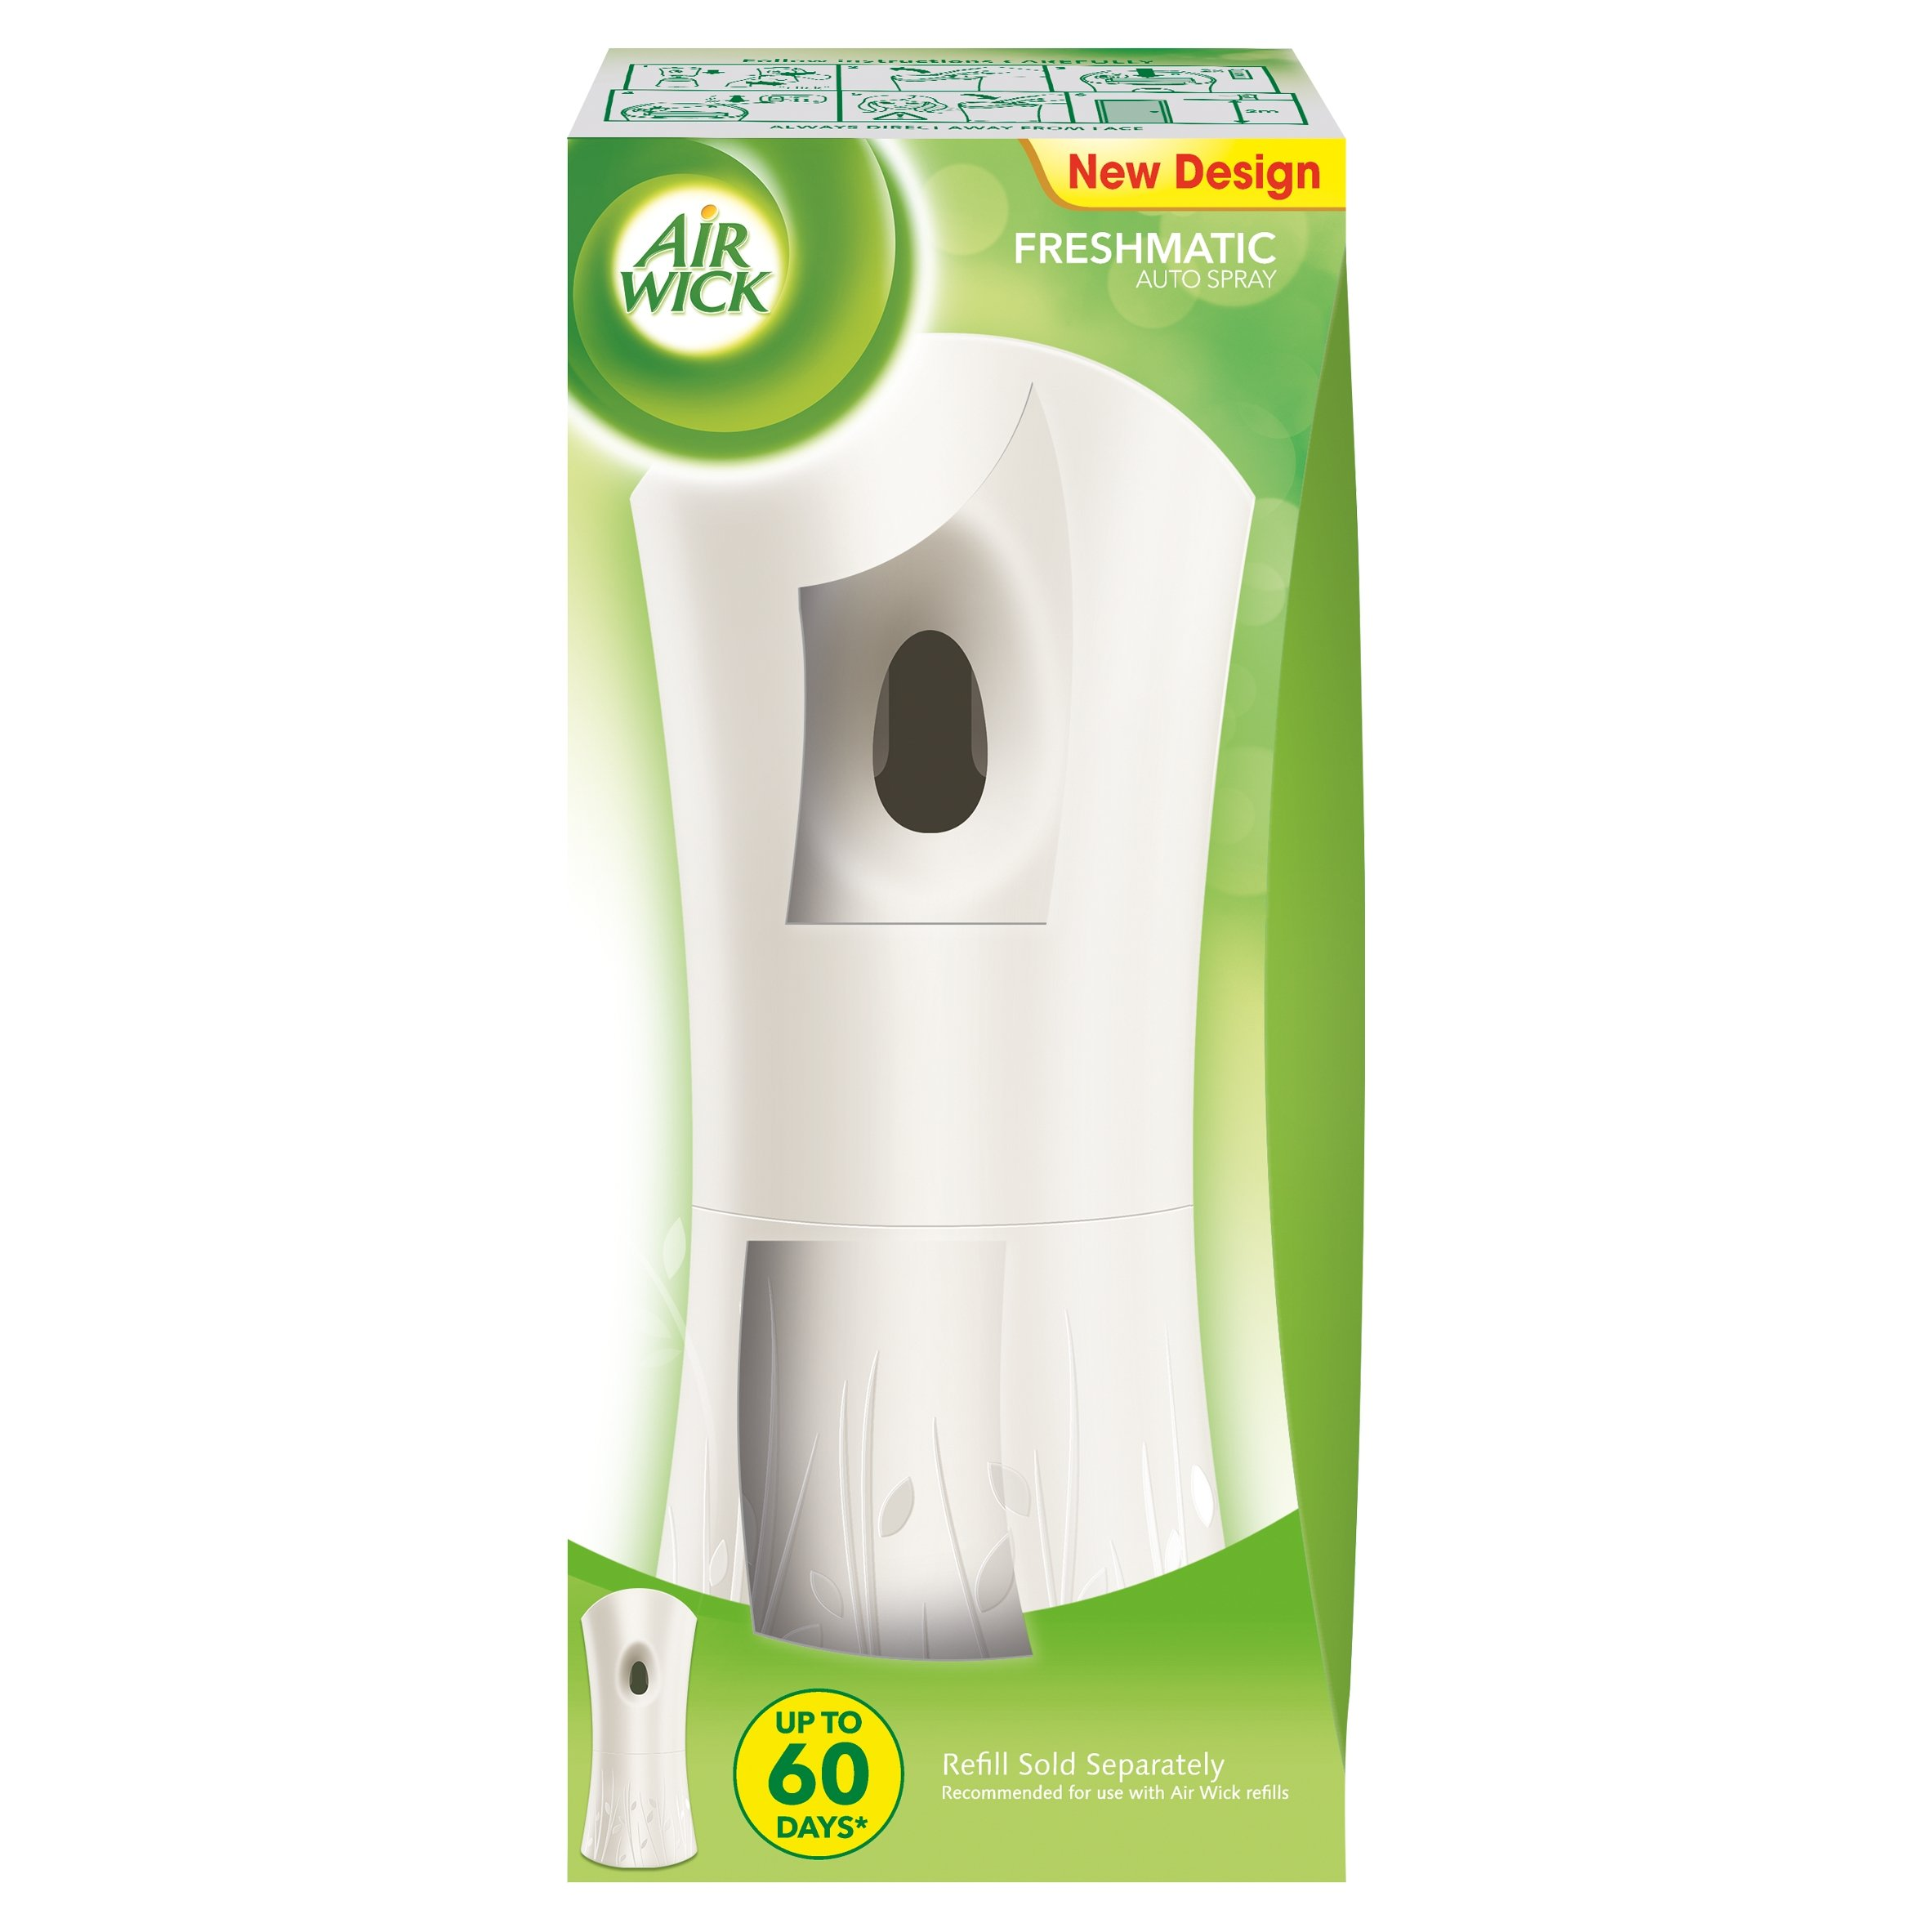 Air Wick Freshmatic Automatic Spray Air Freshener Dispenser. Air Wick Freshmatic Refills Automatic Spray, Woodland Mystique, 4ct. by Air Wick. $ $ 19 99 ( days) FREE Shipping on eligible orders. out of 5 stars 7. Product Features Refills for use in Air Wick Freshmatic Automatic Spray gadgets.